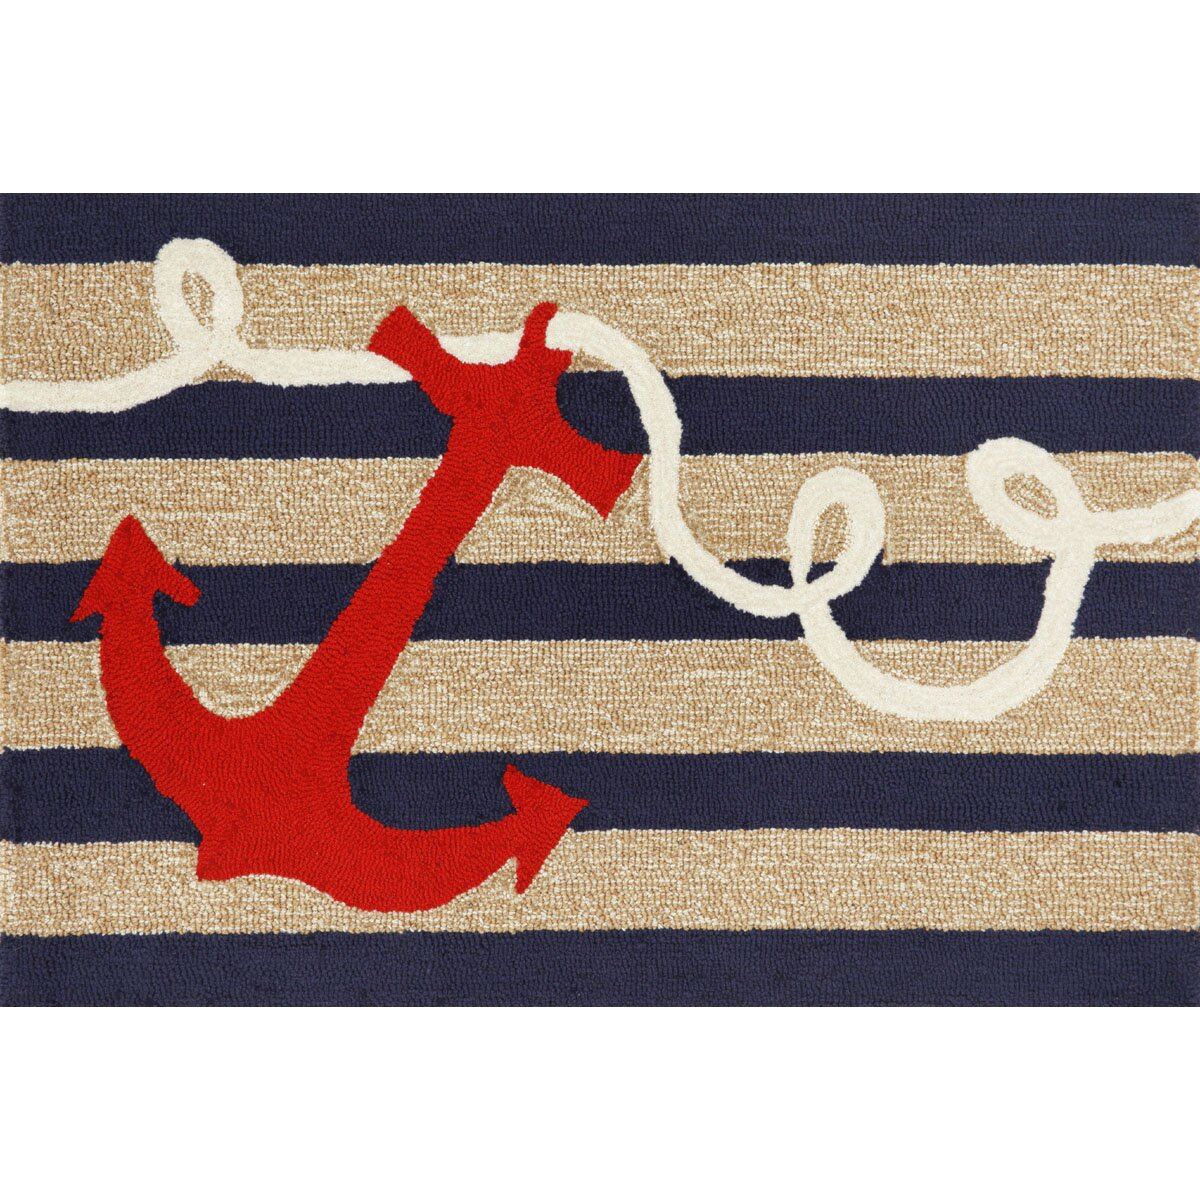 Anchor Rugs: Liora Manne Frontporch Anchor Area Rug & Reviews